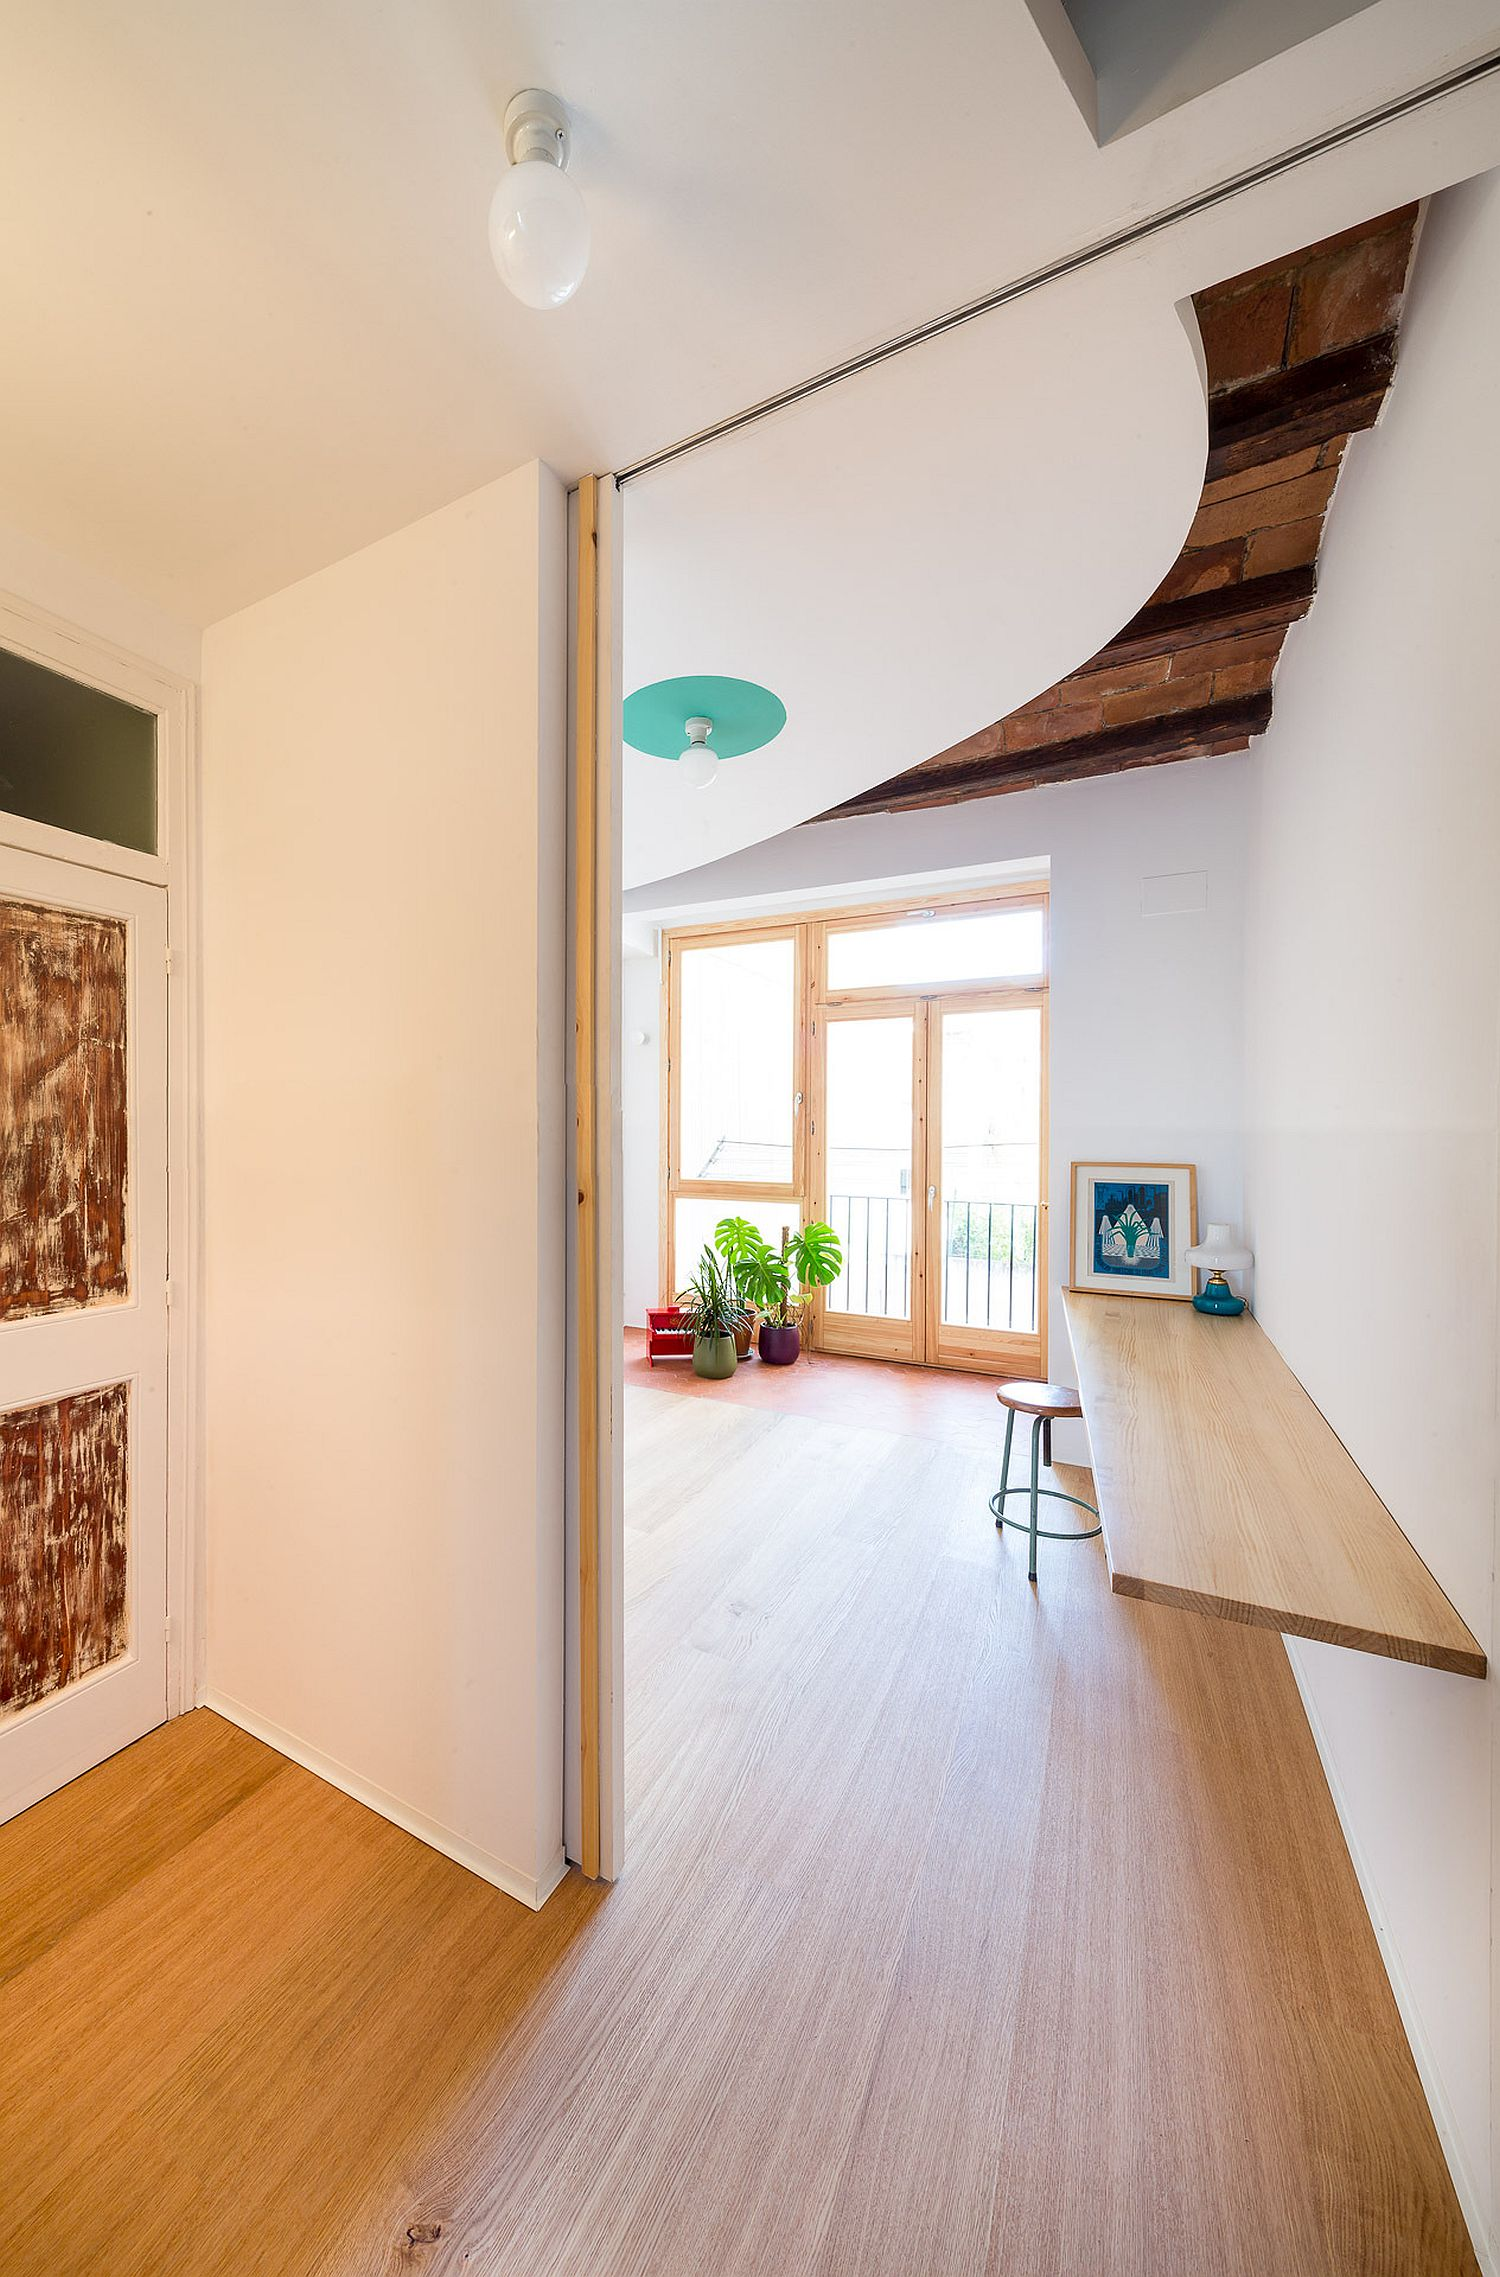 Sliding doors save space while allowing light to pass through